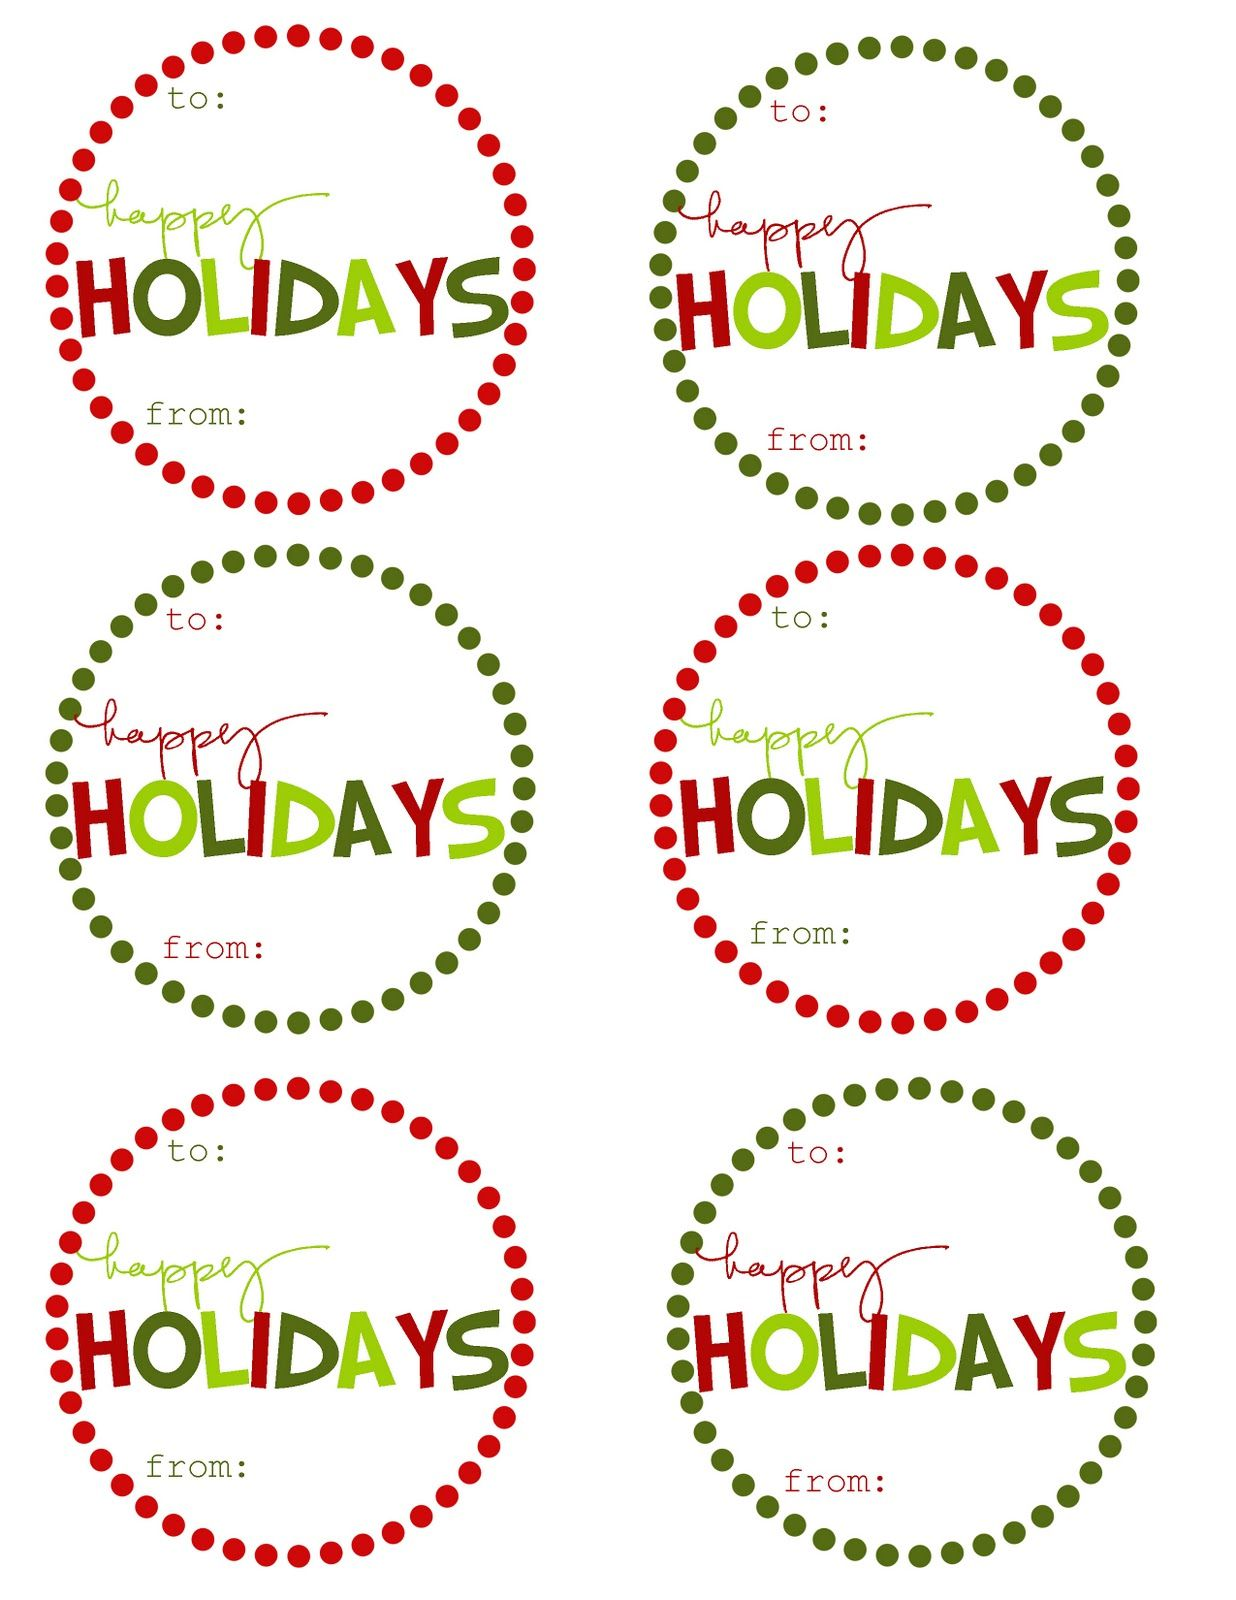 circle gift tag template - circle gift tag template images professional report